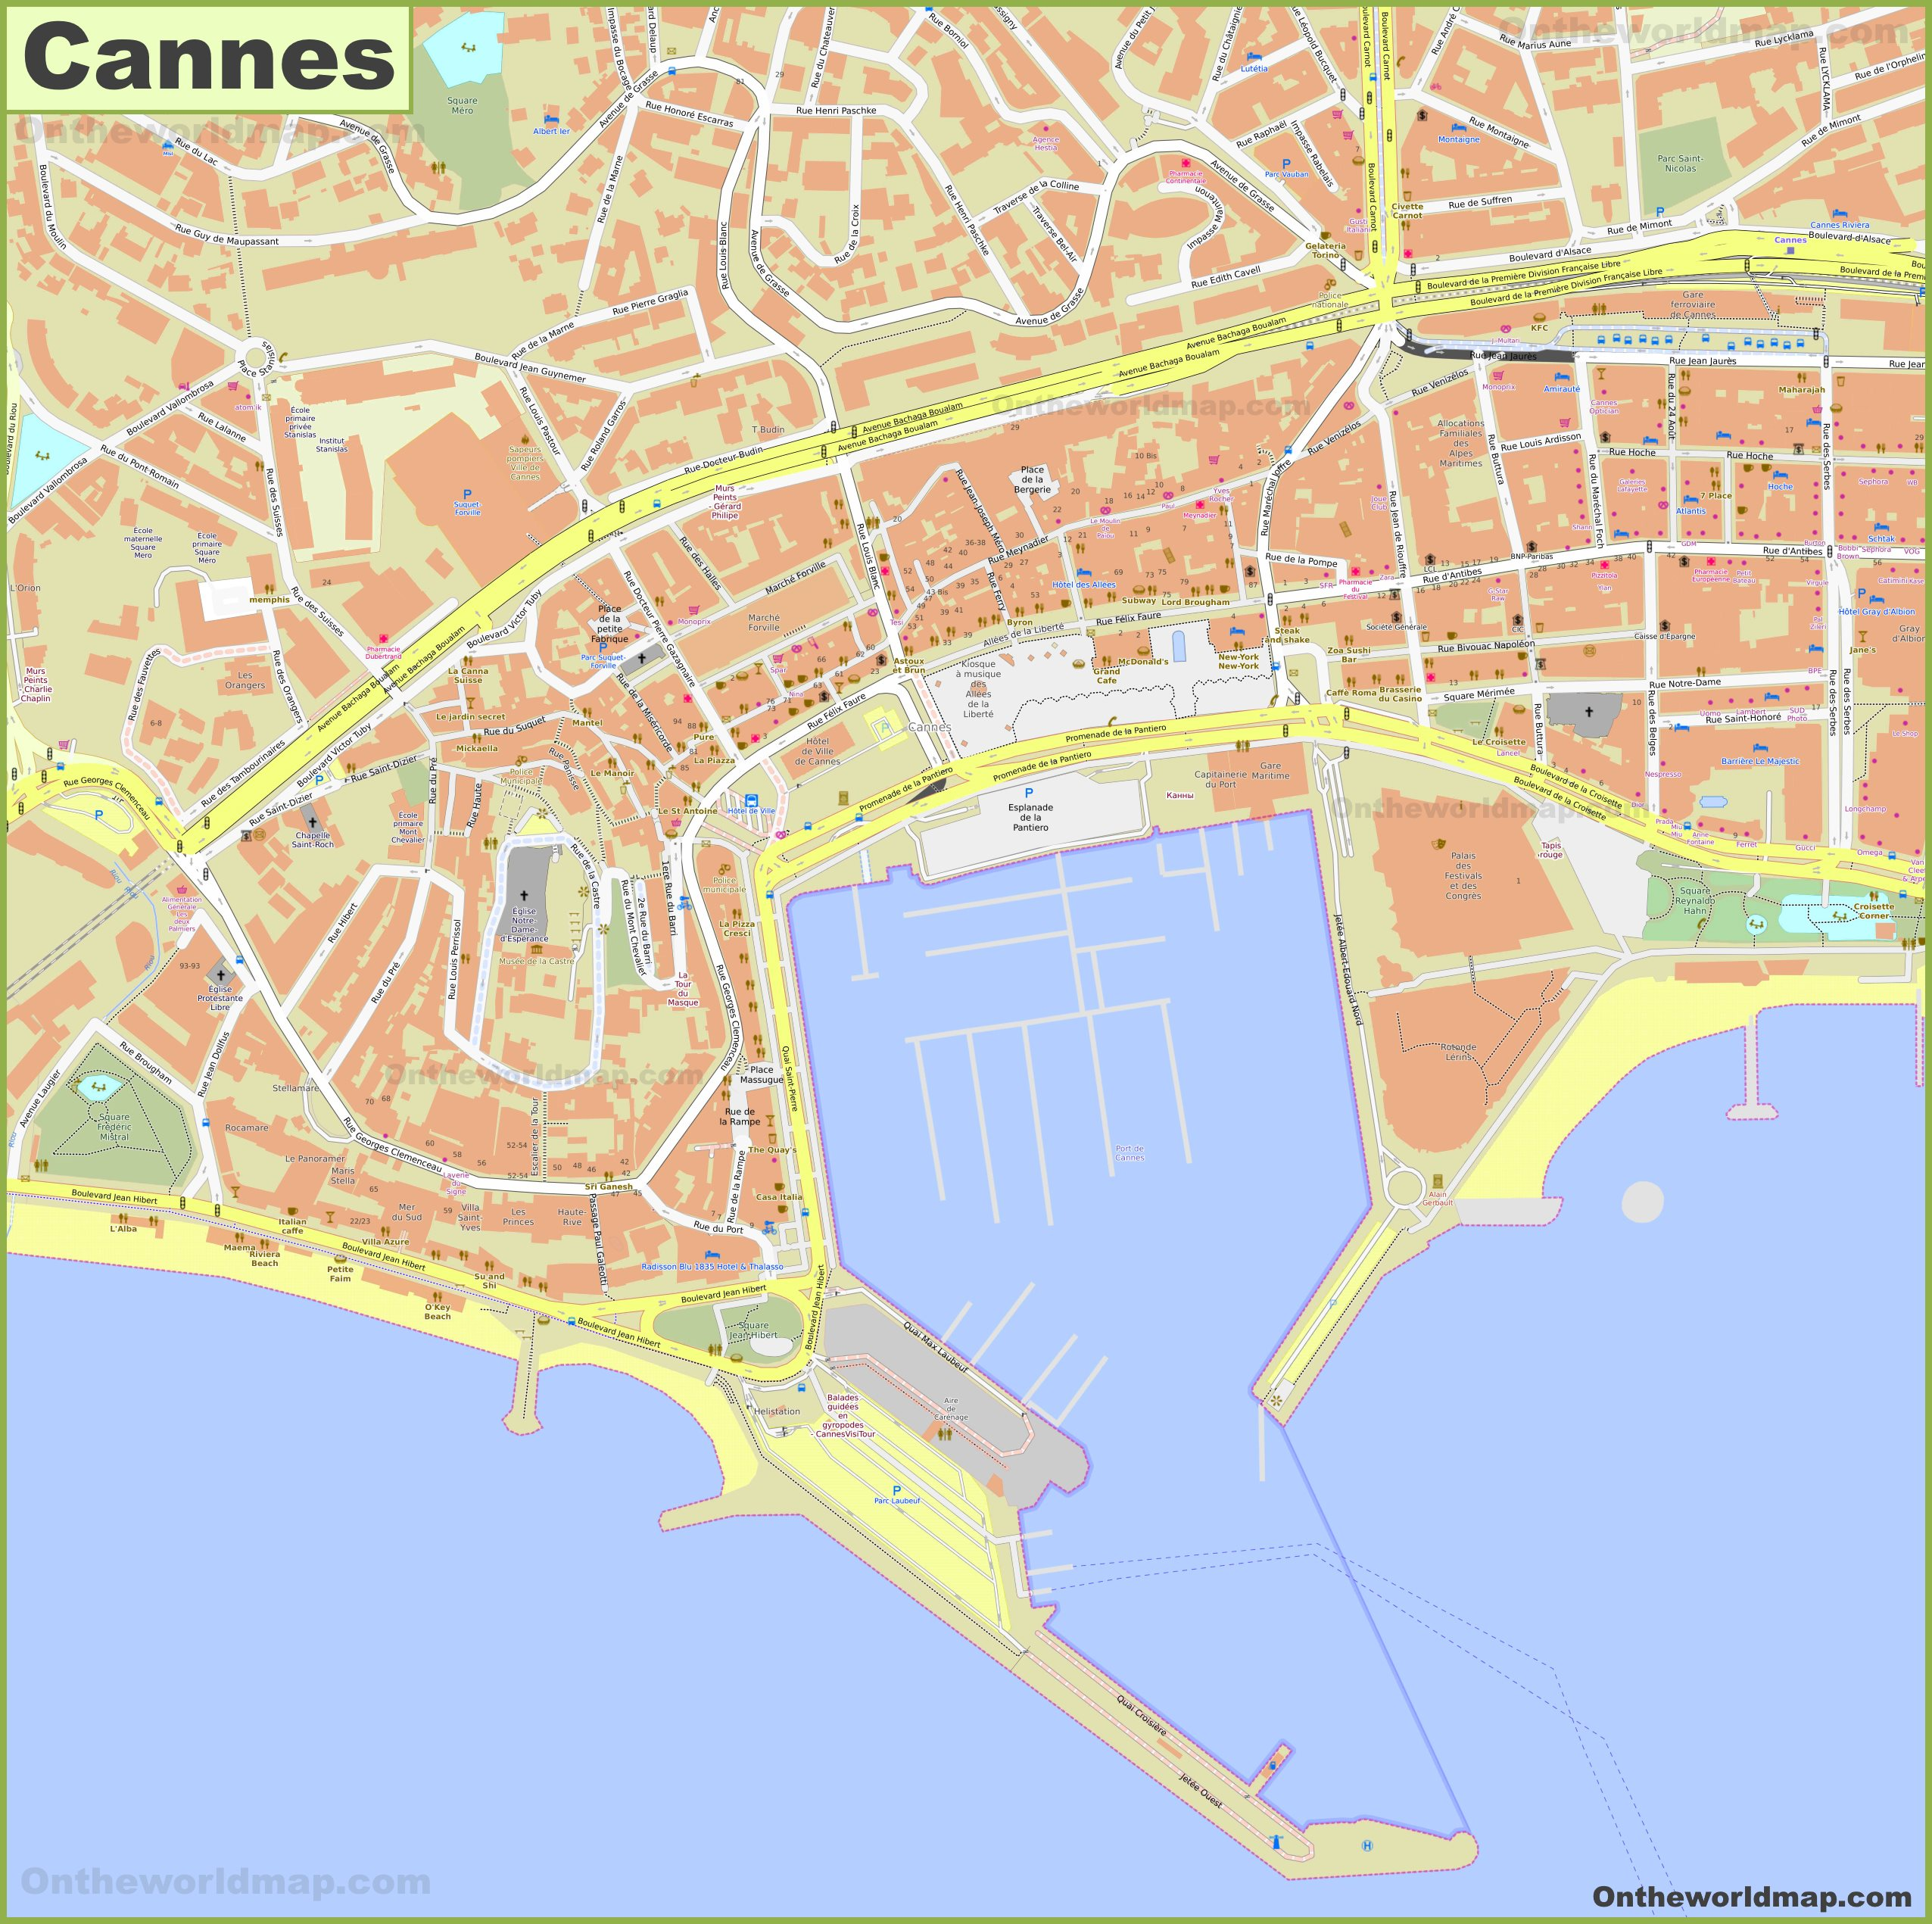 Detailed map of Cannes city center on